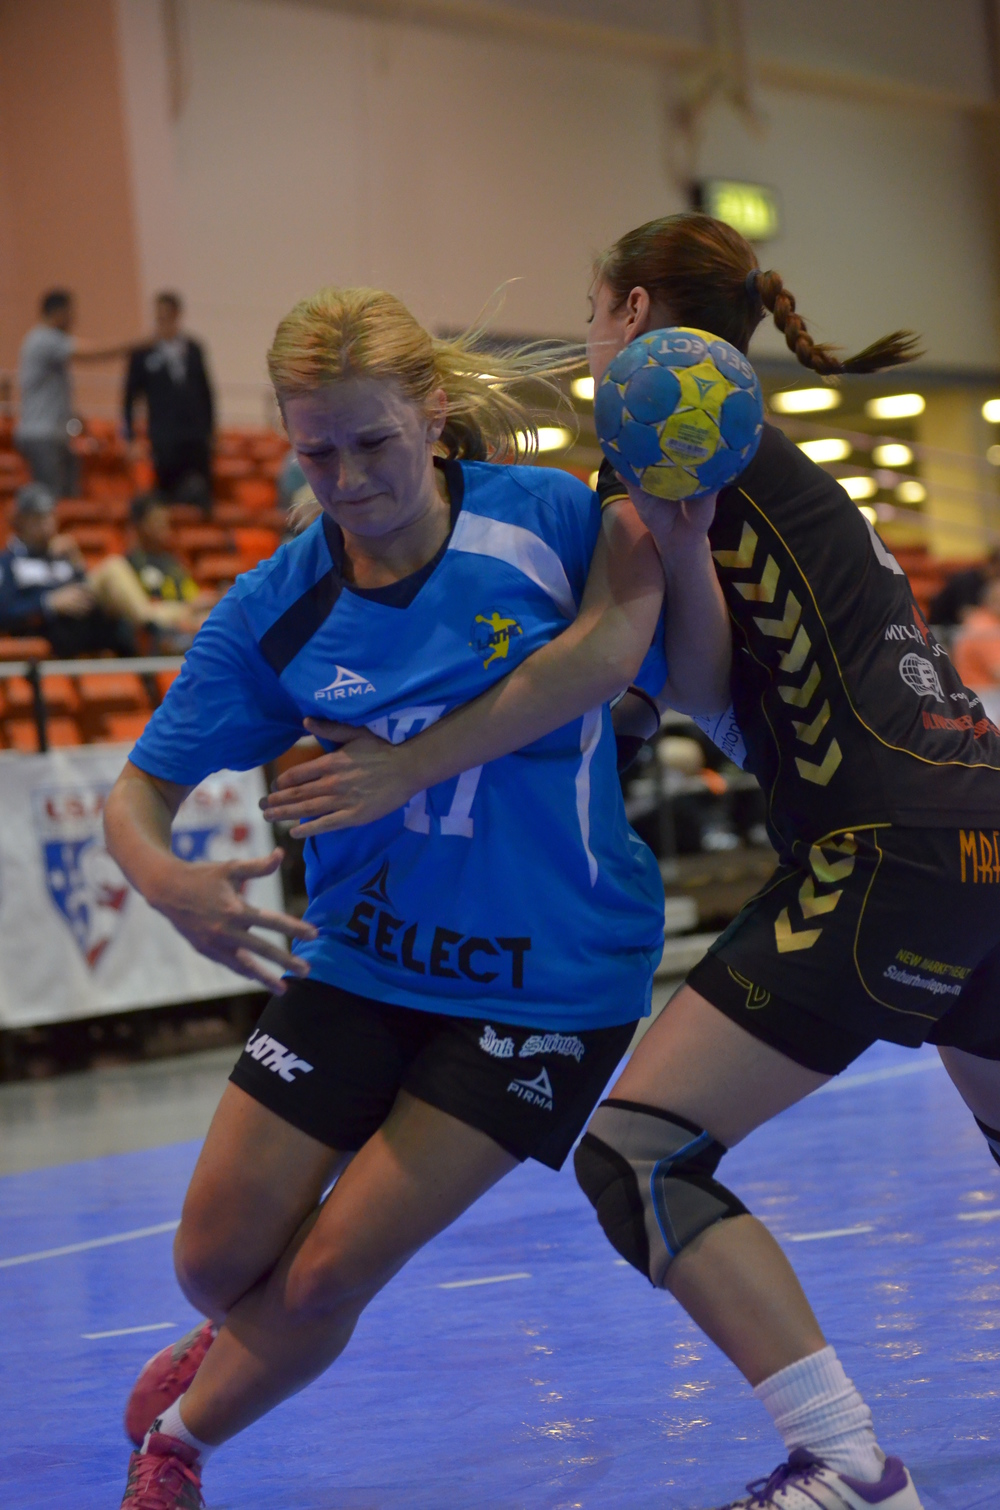 The fast Swedish wing player Jennie Johansson trying to break through a clinging defensive player at a national game. Photo by Atticus Overbay, LA Team Handball photographer.